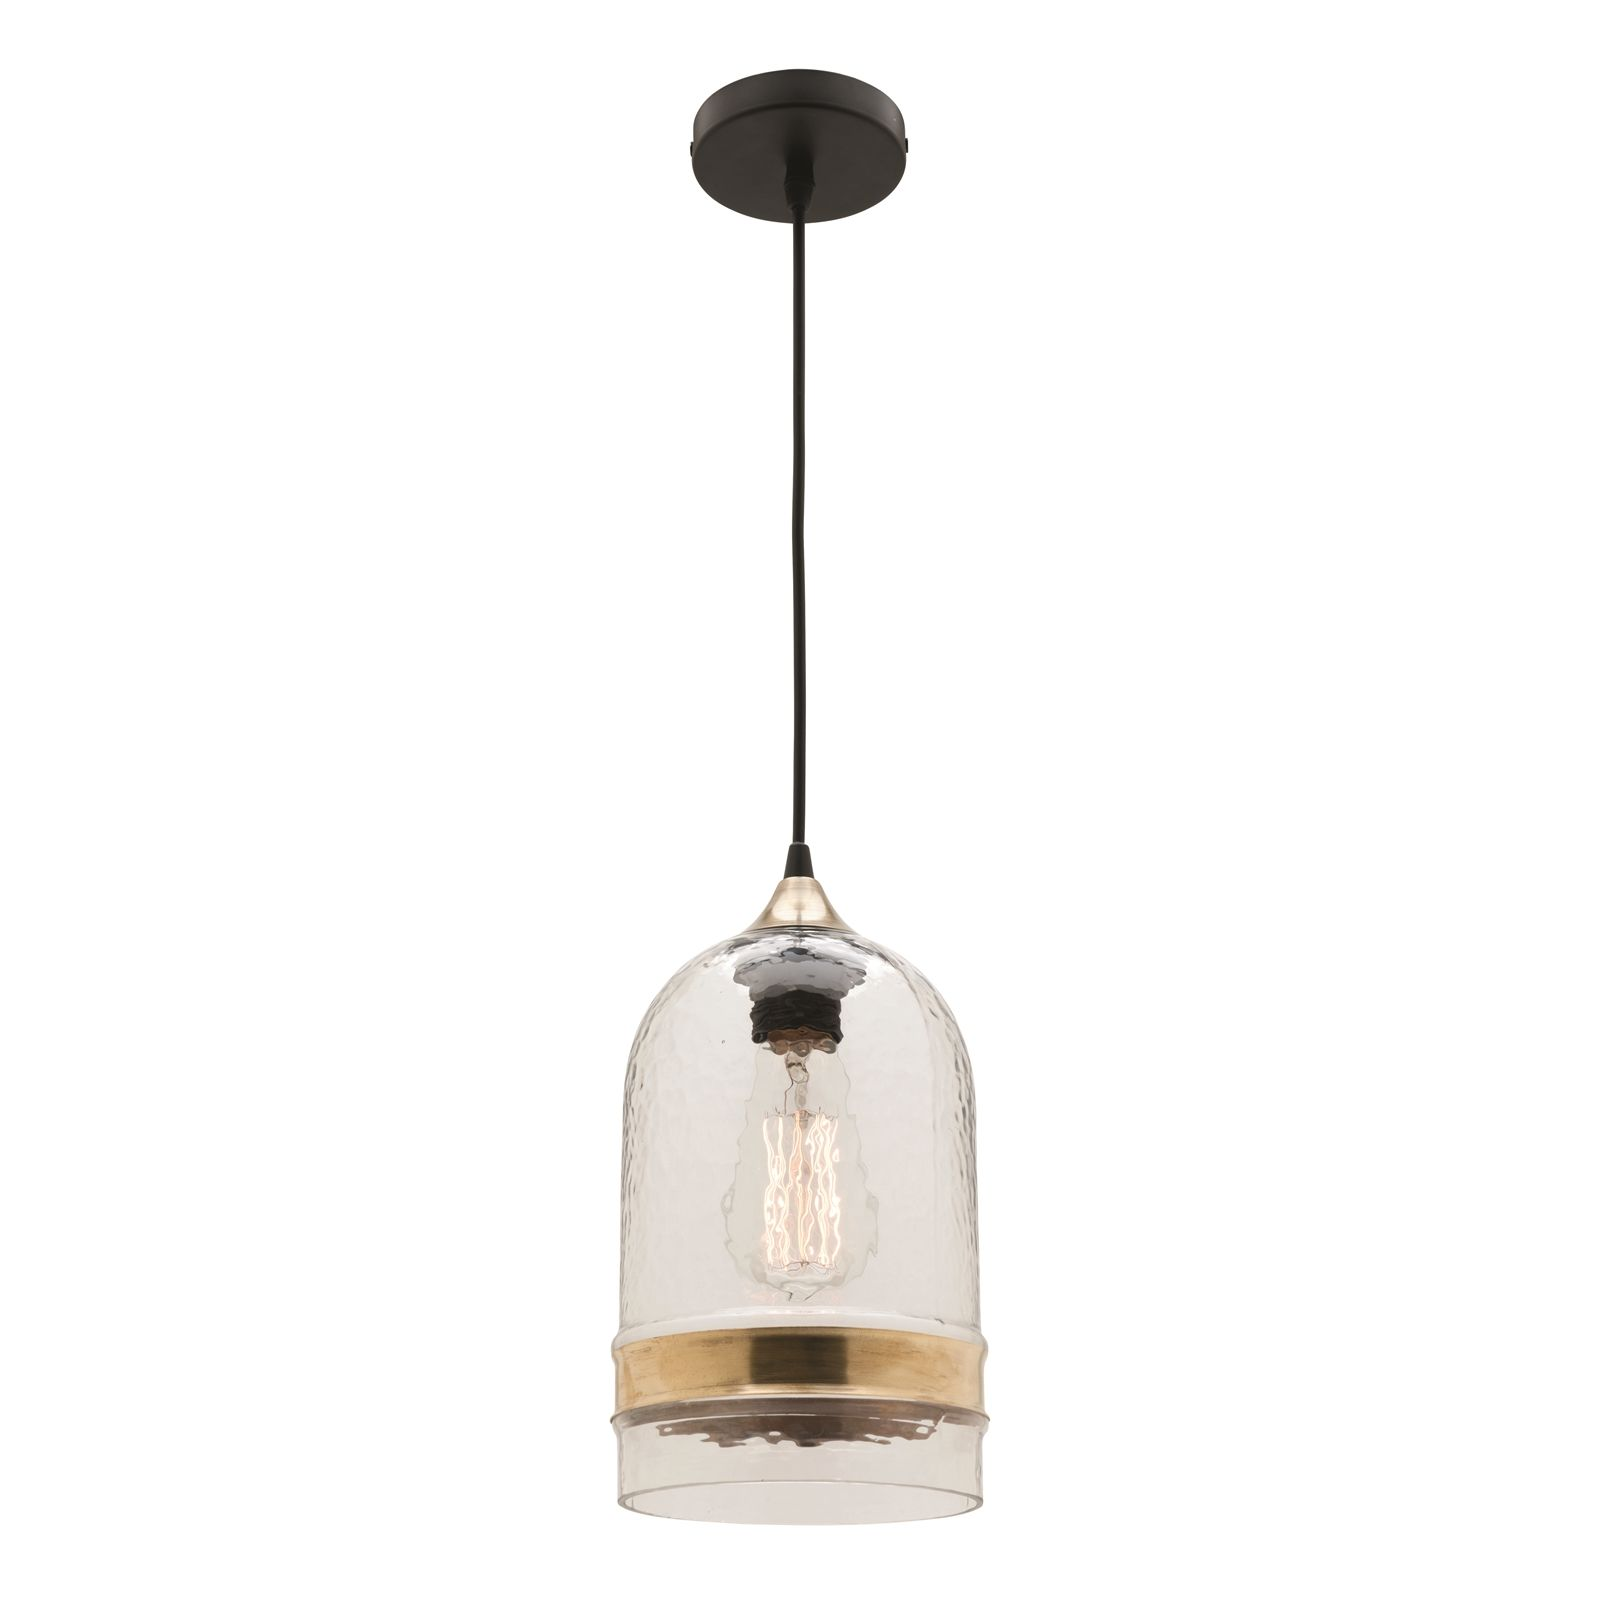 Find Mercator 240V Glass And Brass Haven Pendant Light At